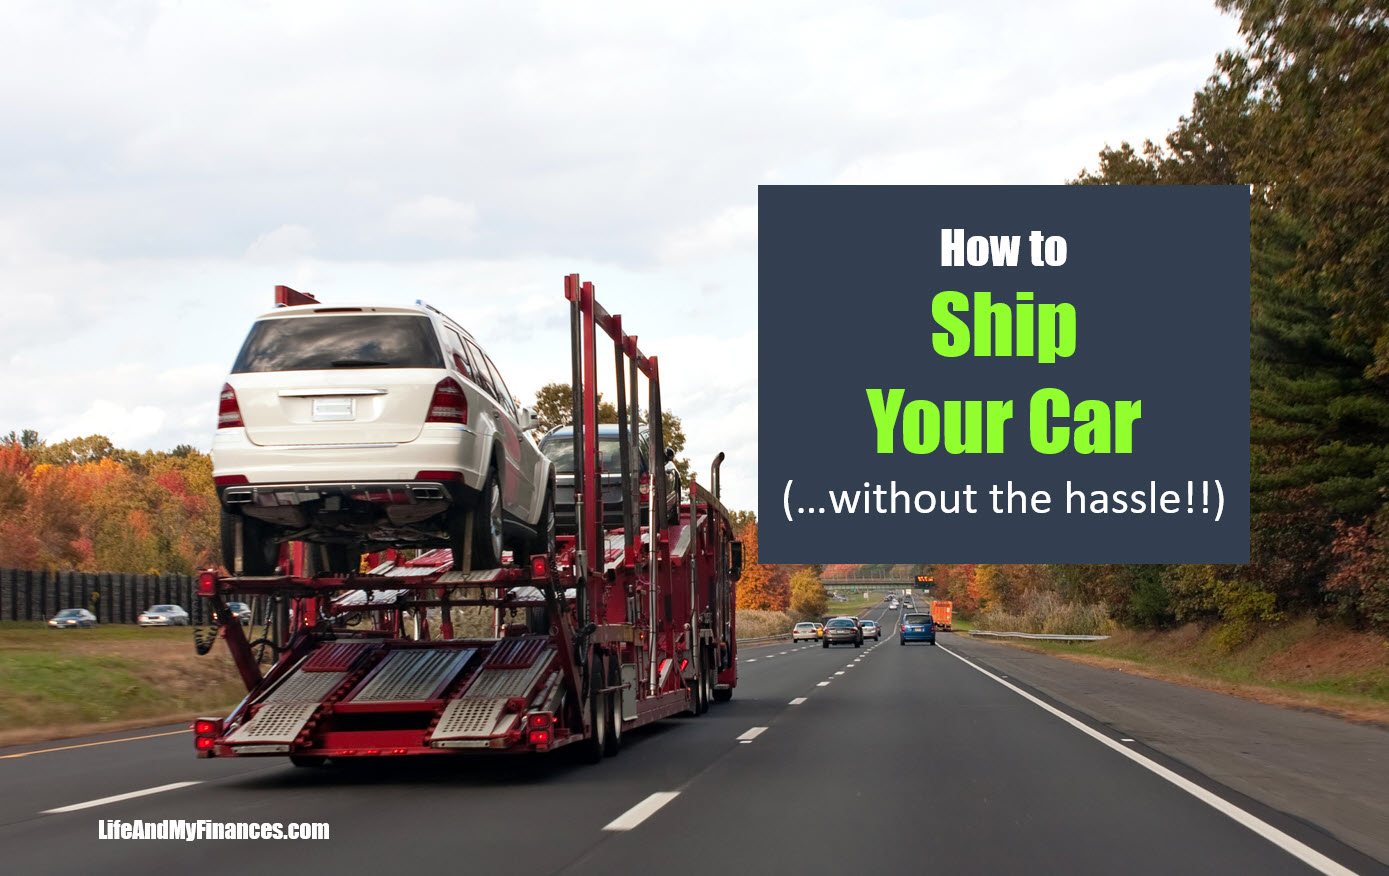 How To Ship Your Car (Without The Hassle!)